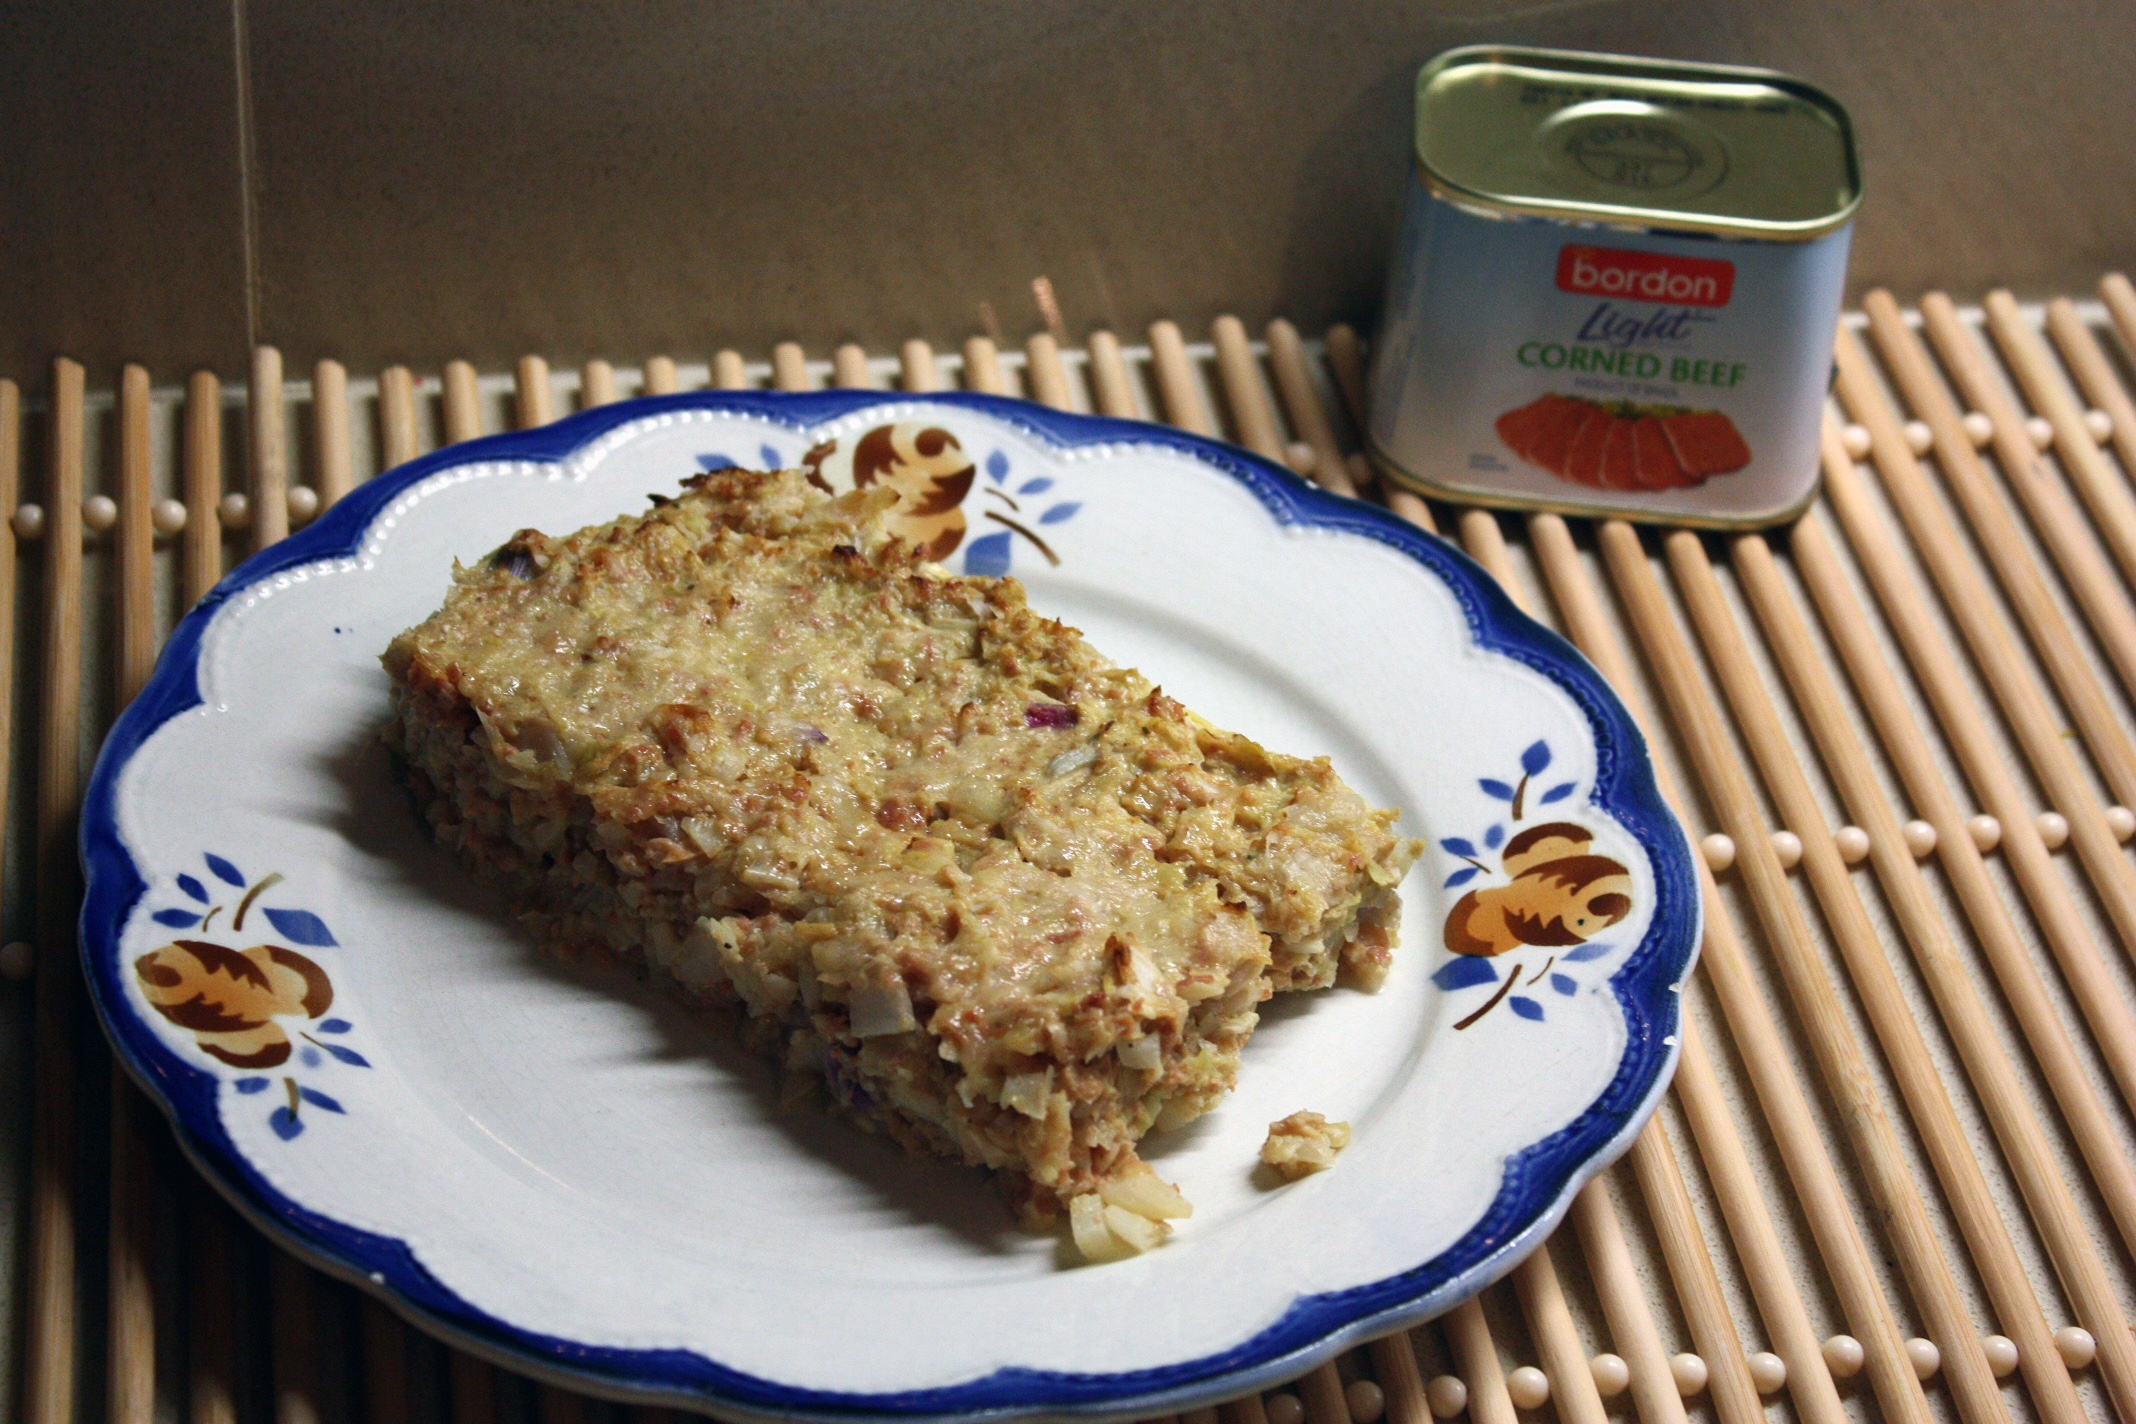 Johann Cutajar BORDON Recipe: Cabbage and corned beef bake